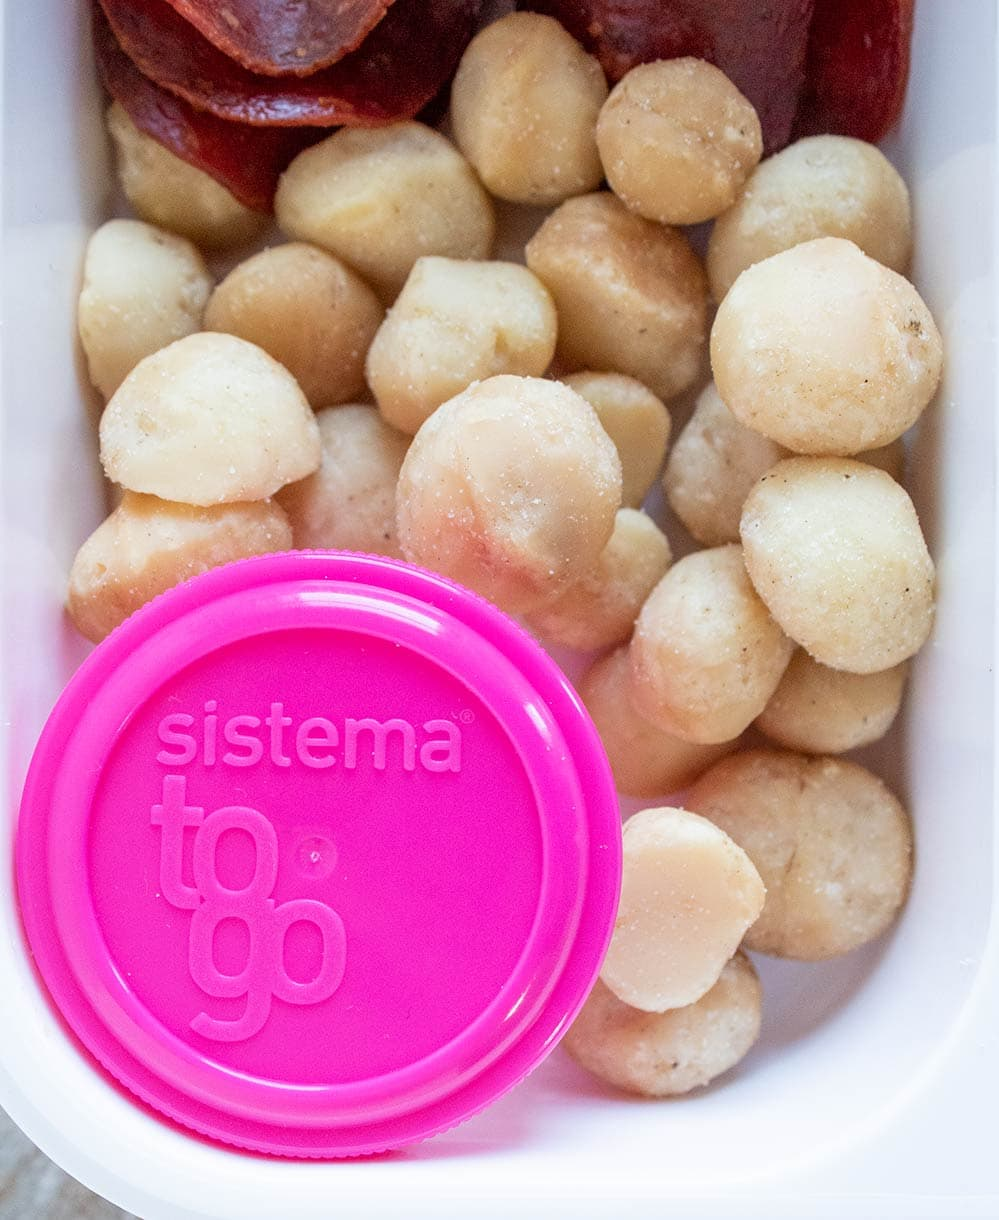 closeup of keto bistro box with pink container and macadamia nuts